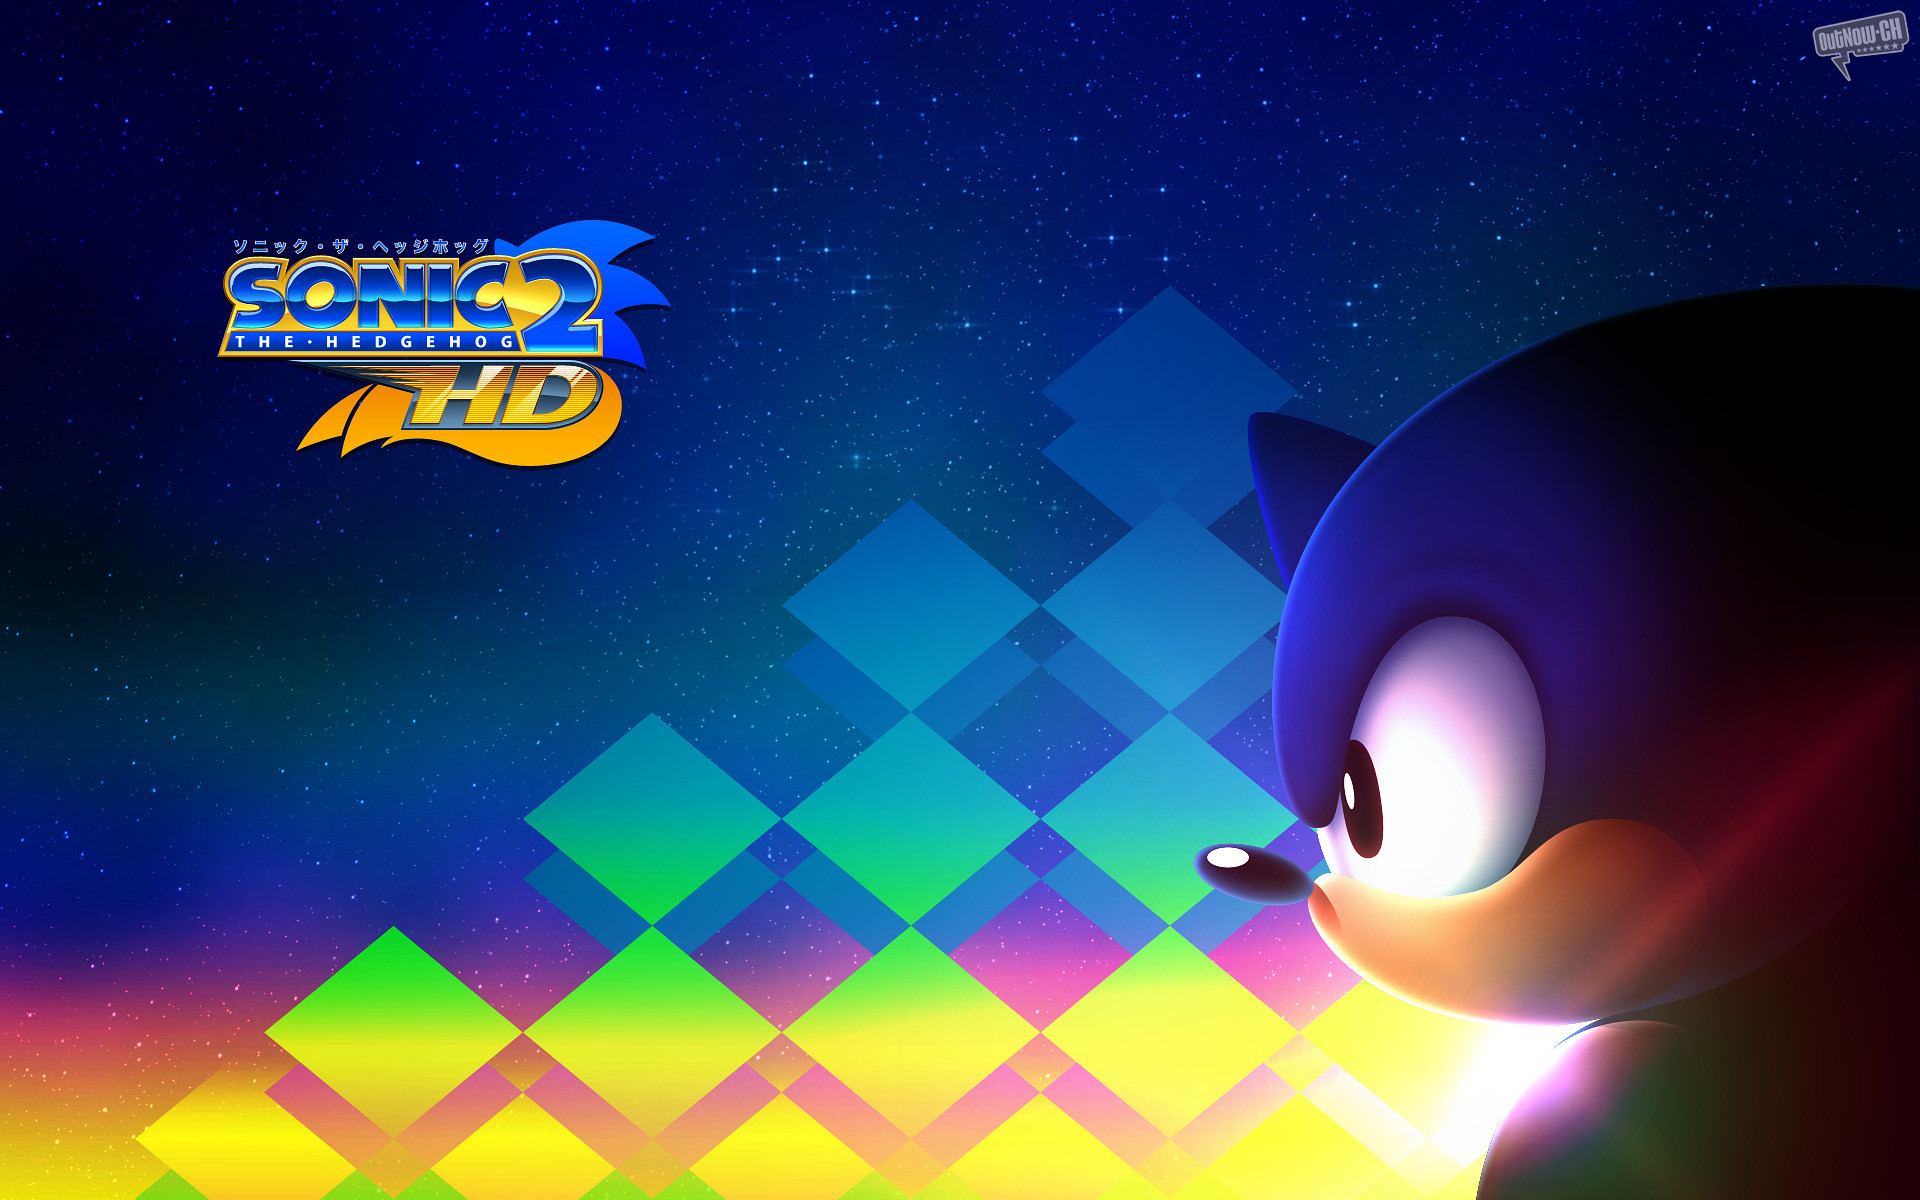 Sonic 2 HD wallpapers